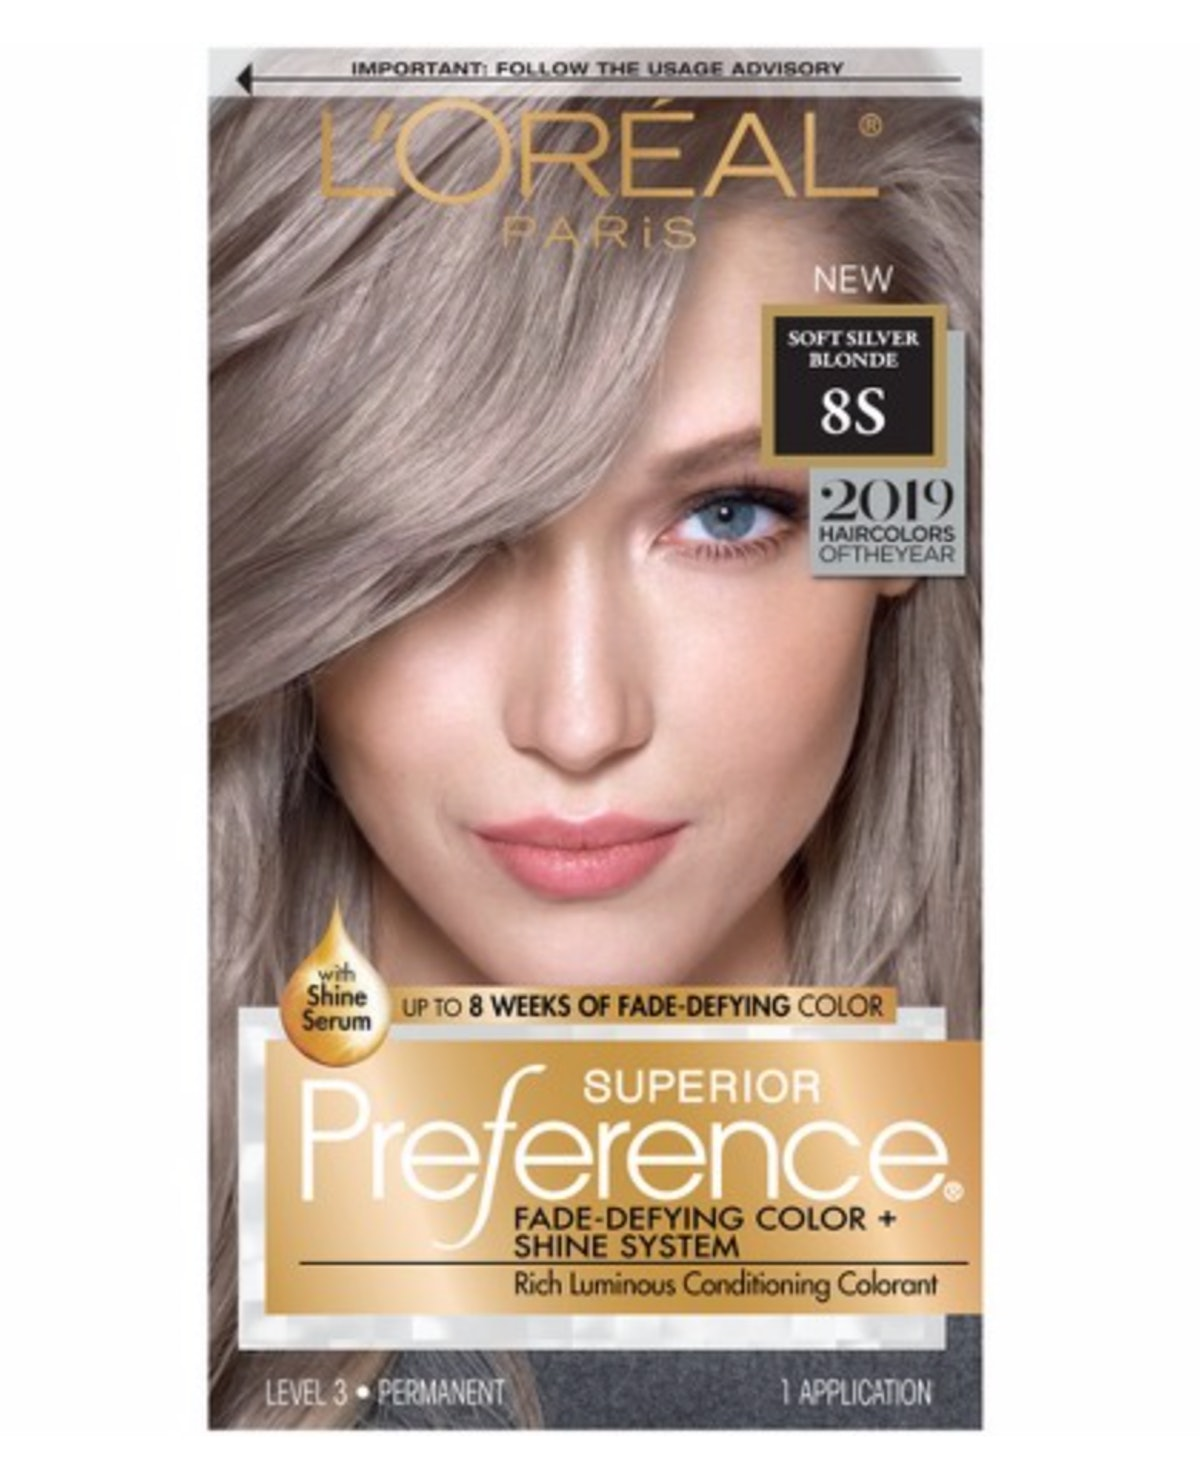 L'Oreal Paris Superior Preference Permanent Hair Color in Soft Silver Blonde